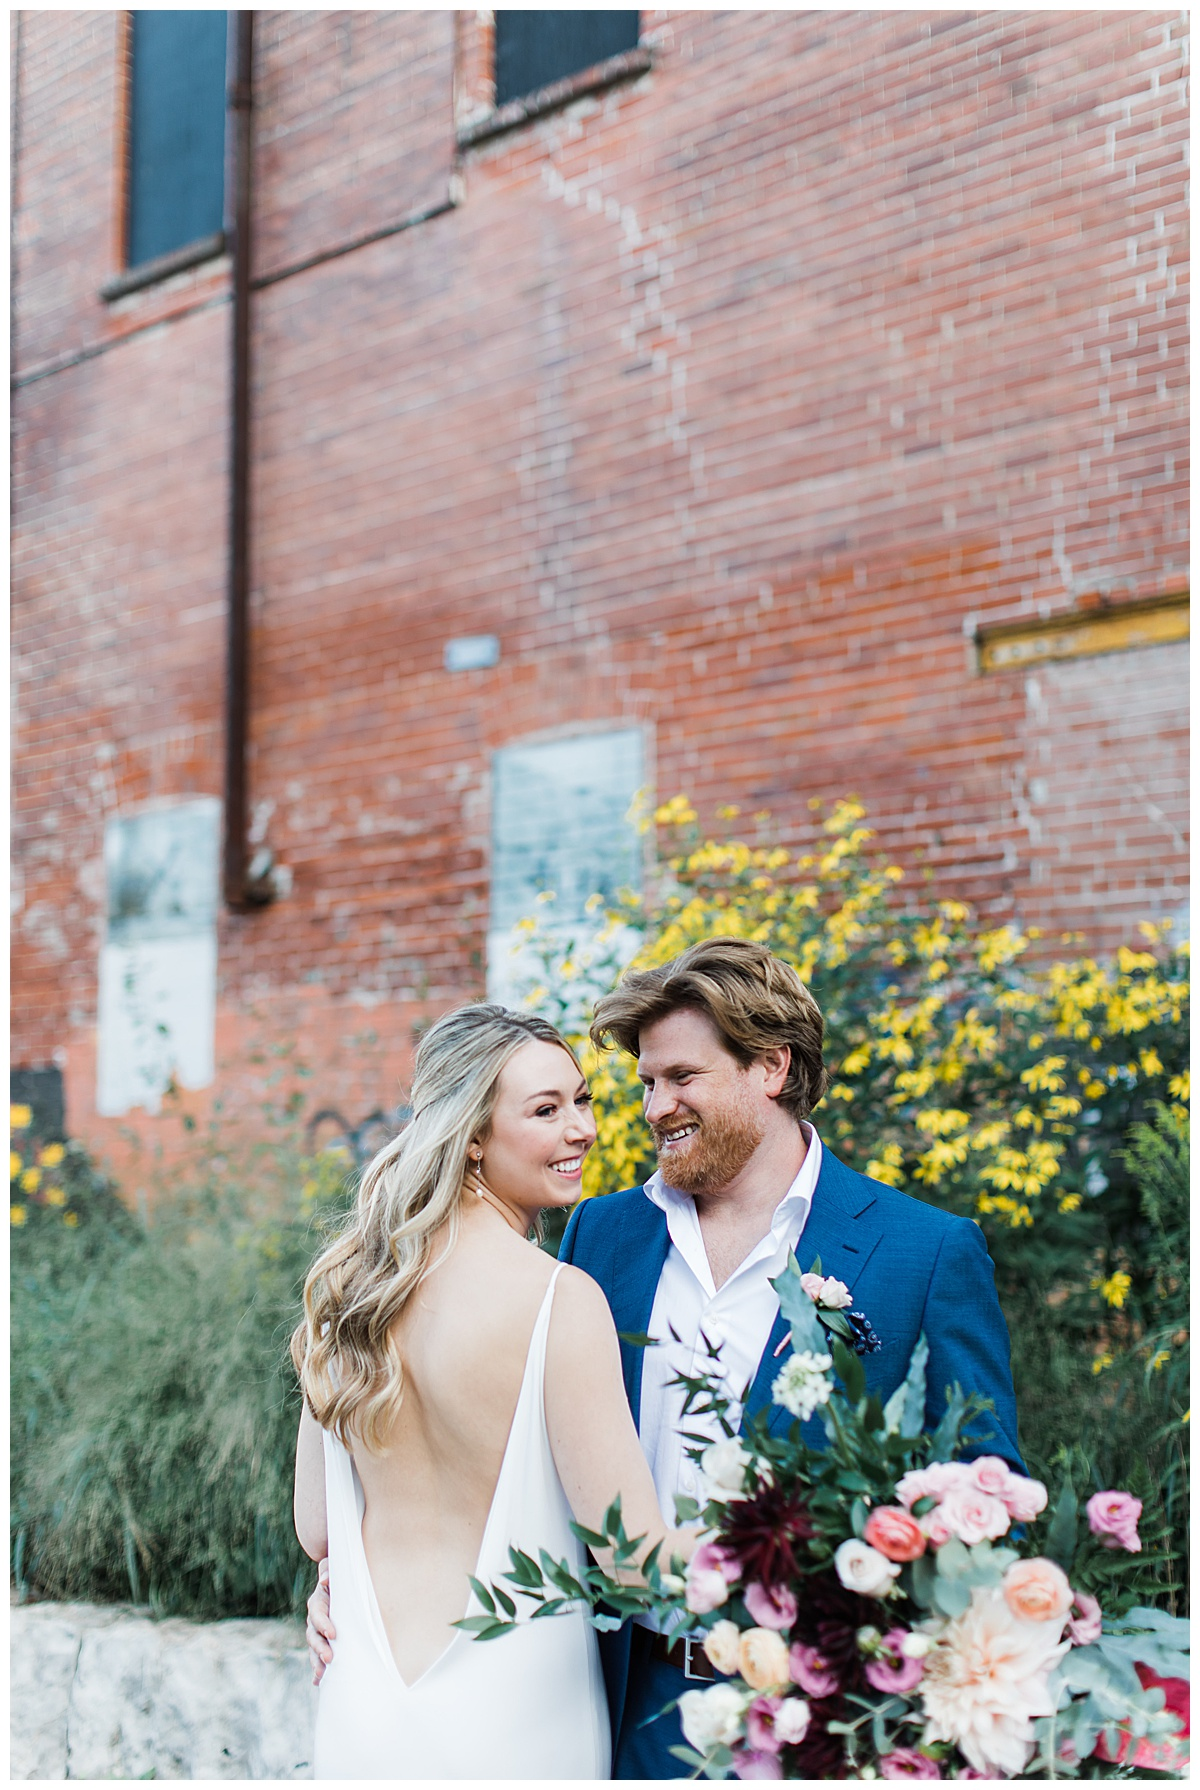 Bride in low back dress smiling with groom | wildflower wedding bouquet